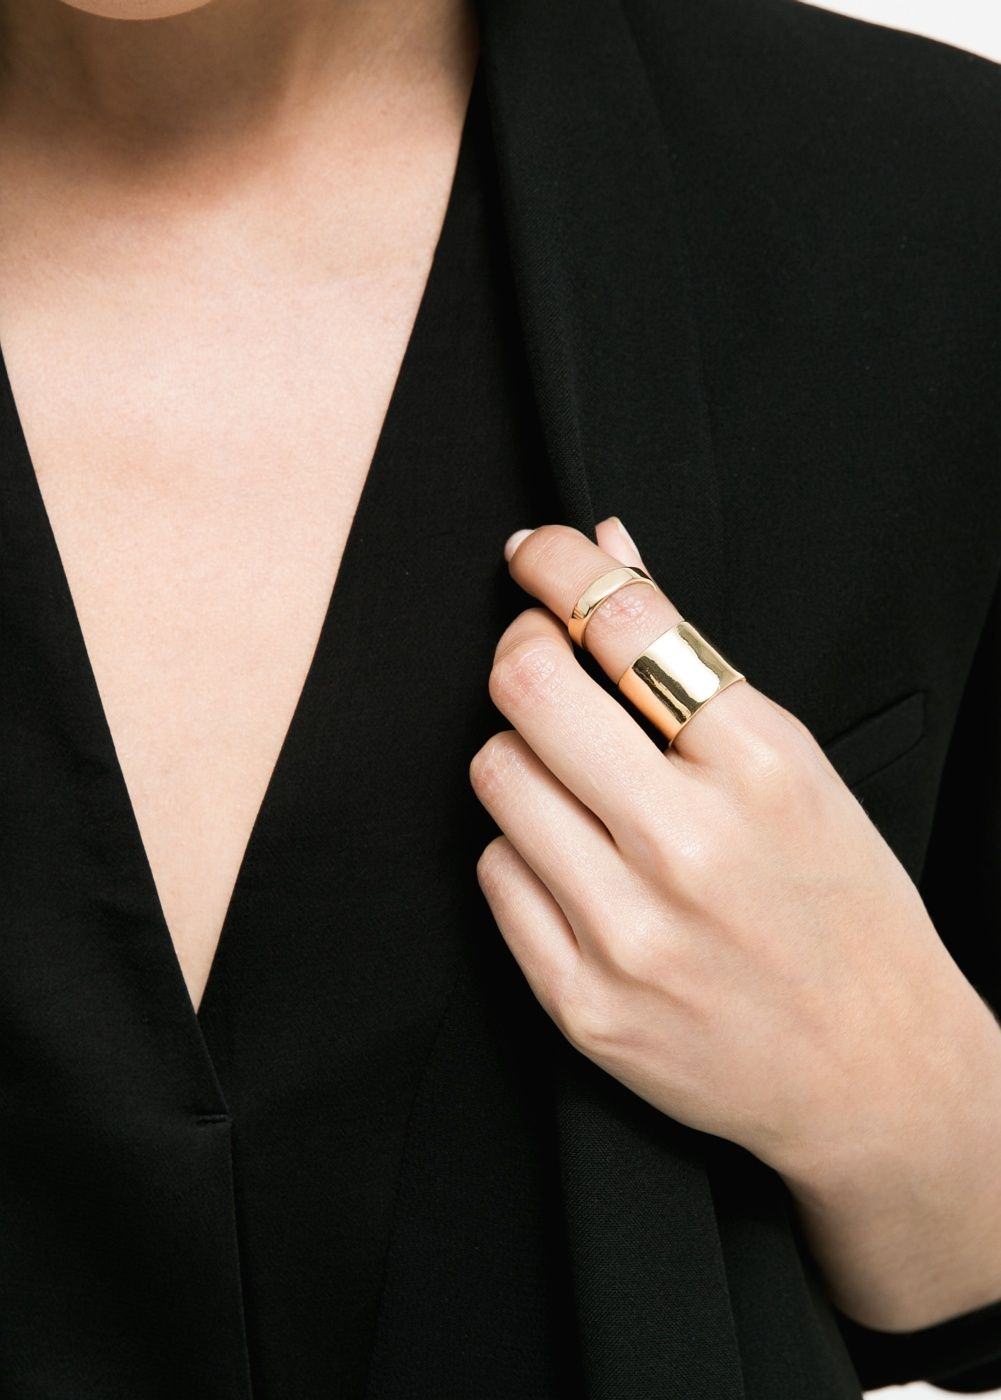 Gold rings: trends and classics 80